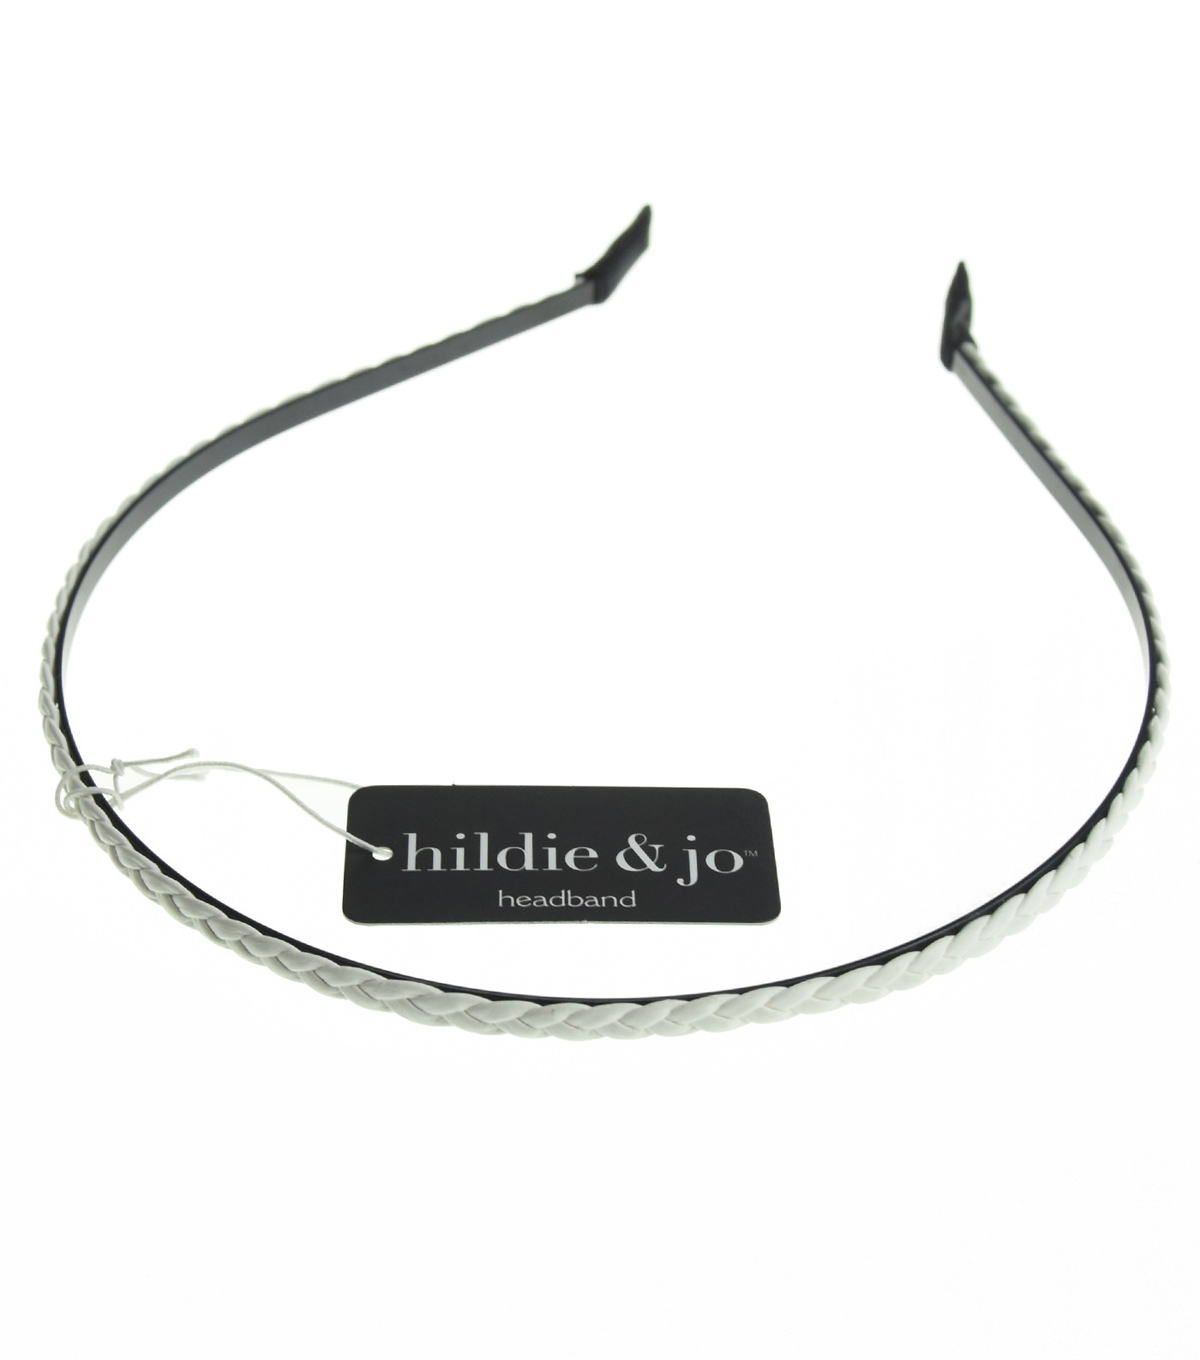 hildie & jo Braided Headband-White